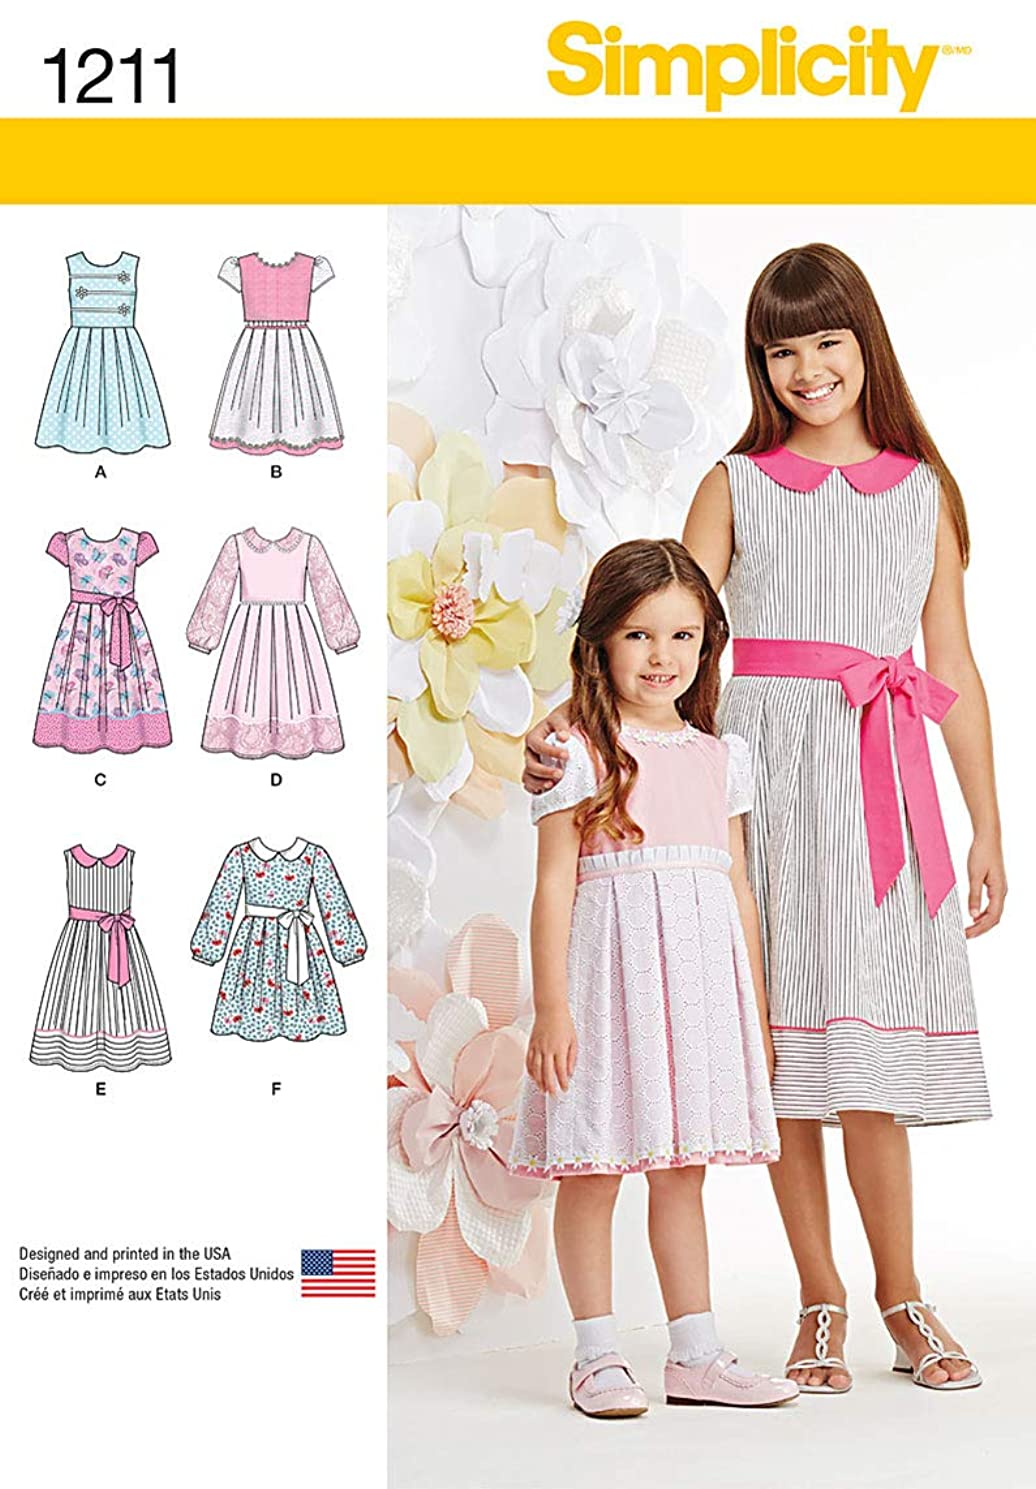 Simplicity 1211 Girl's Dress Sewing Patterns, Sizes KS (7-14)